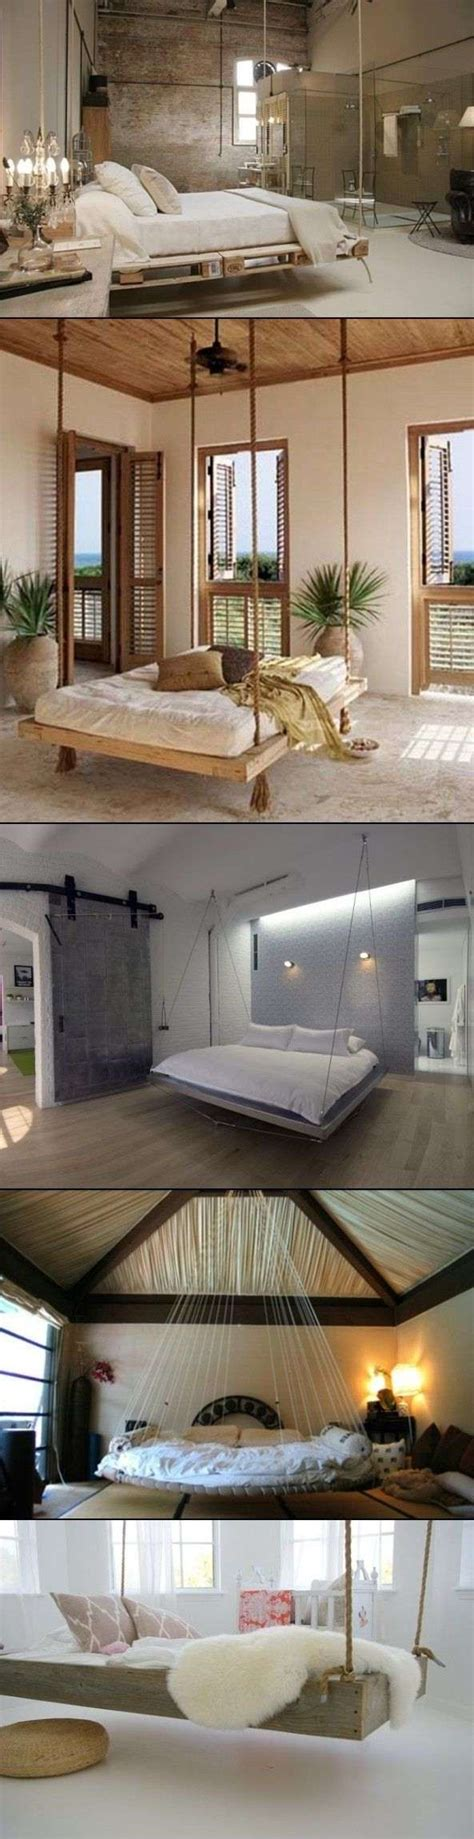 hanging pallet bed amazing interior design